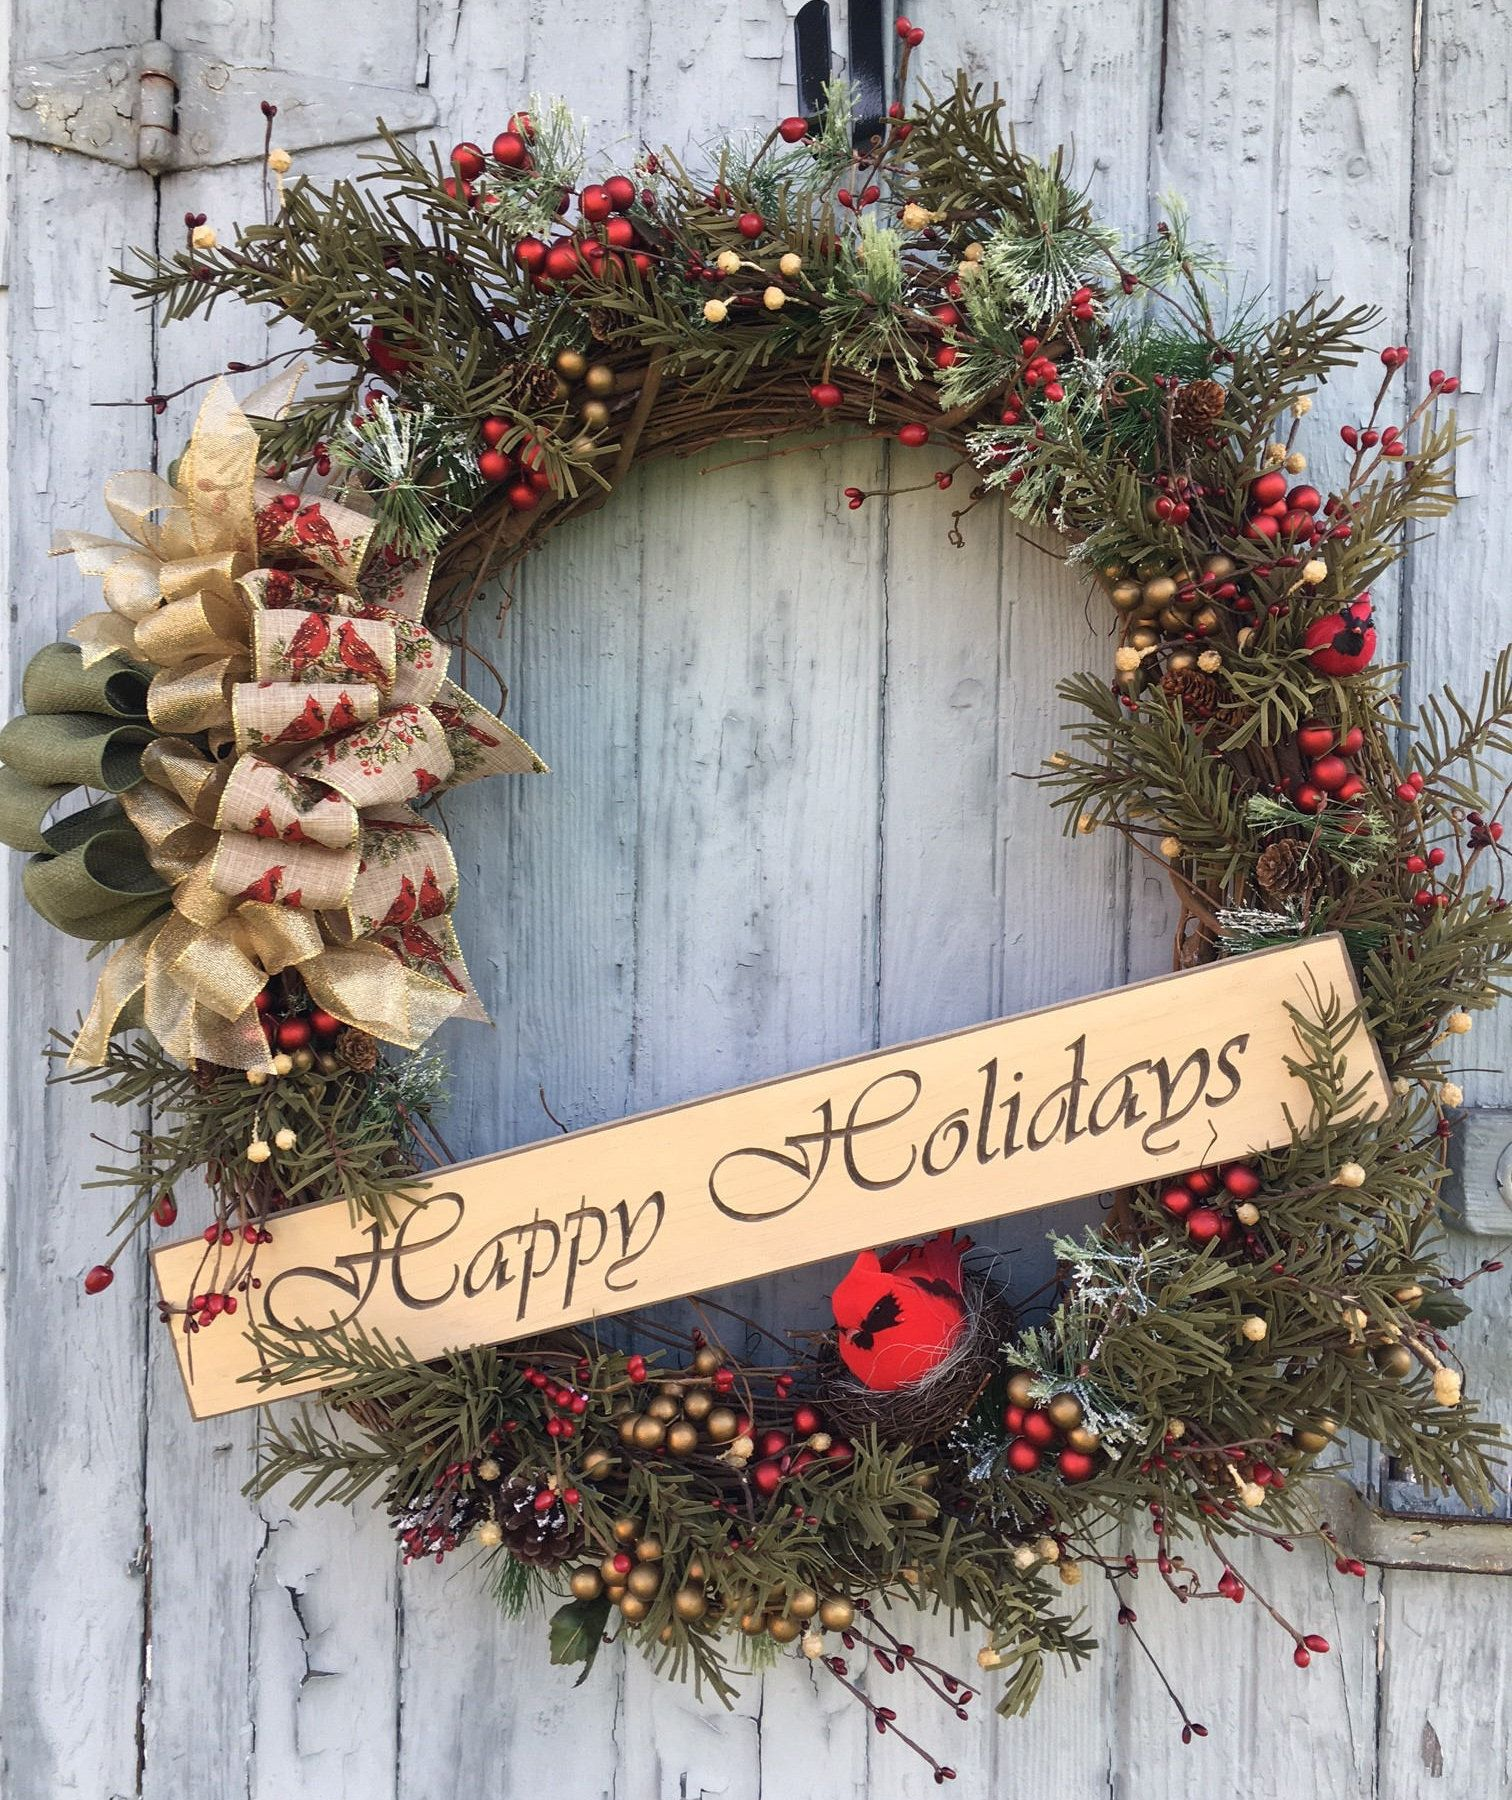 Extra Large Happy Holidays Red Cardinal Christmas Wreath By Gigishandmadewreaths On Etsy Christmas Wreaths Engraved Wood Signs Holiday Red